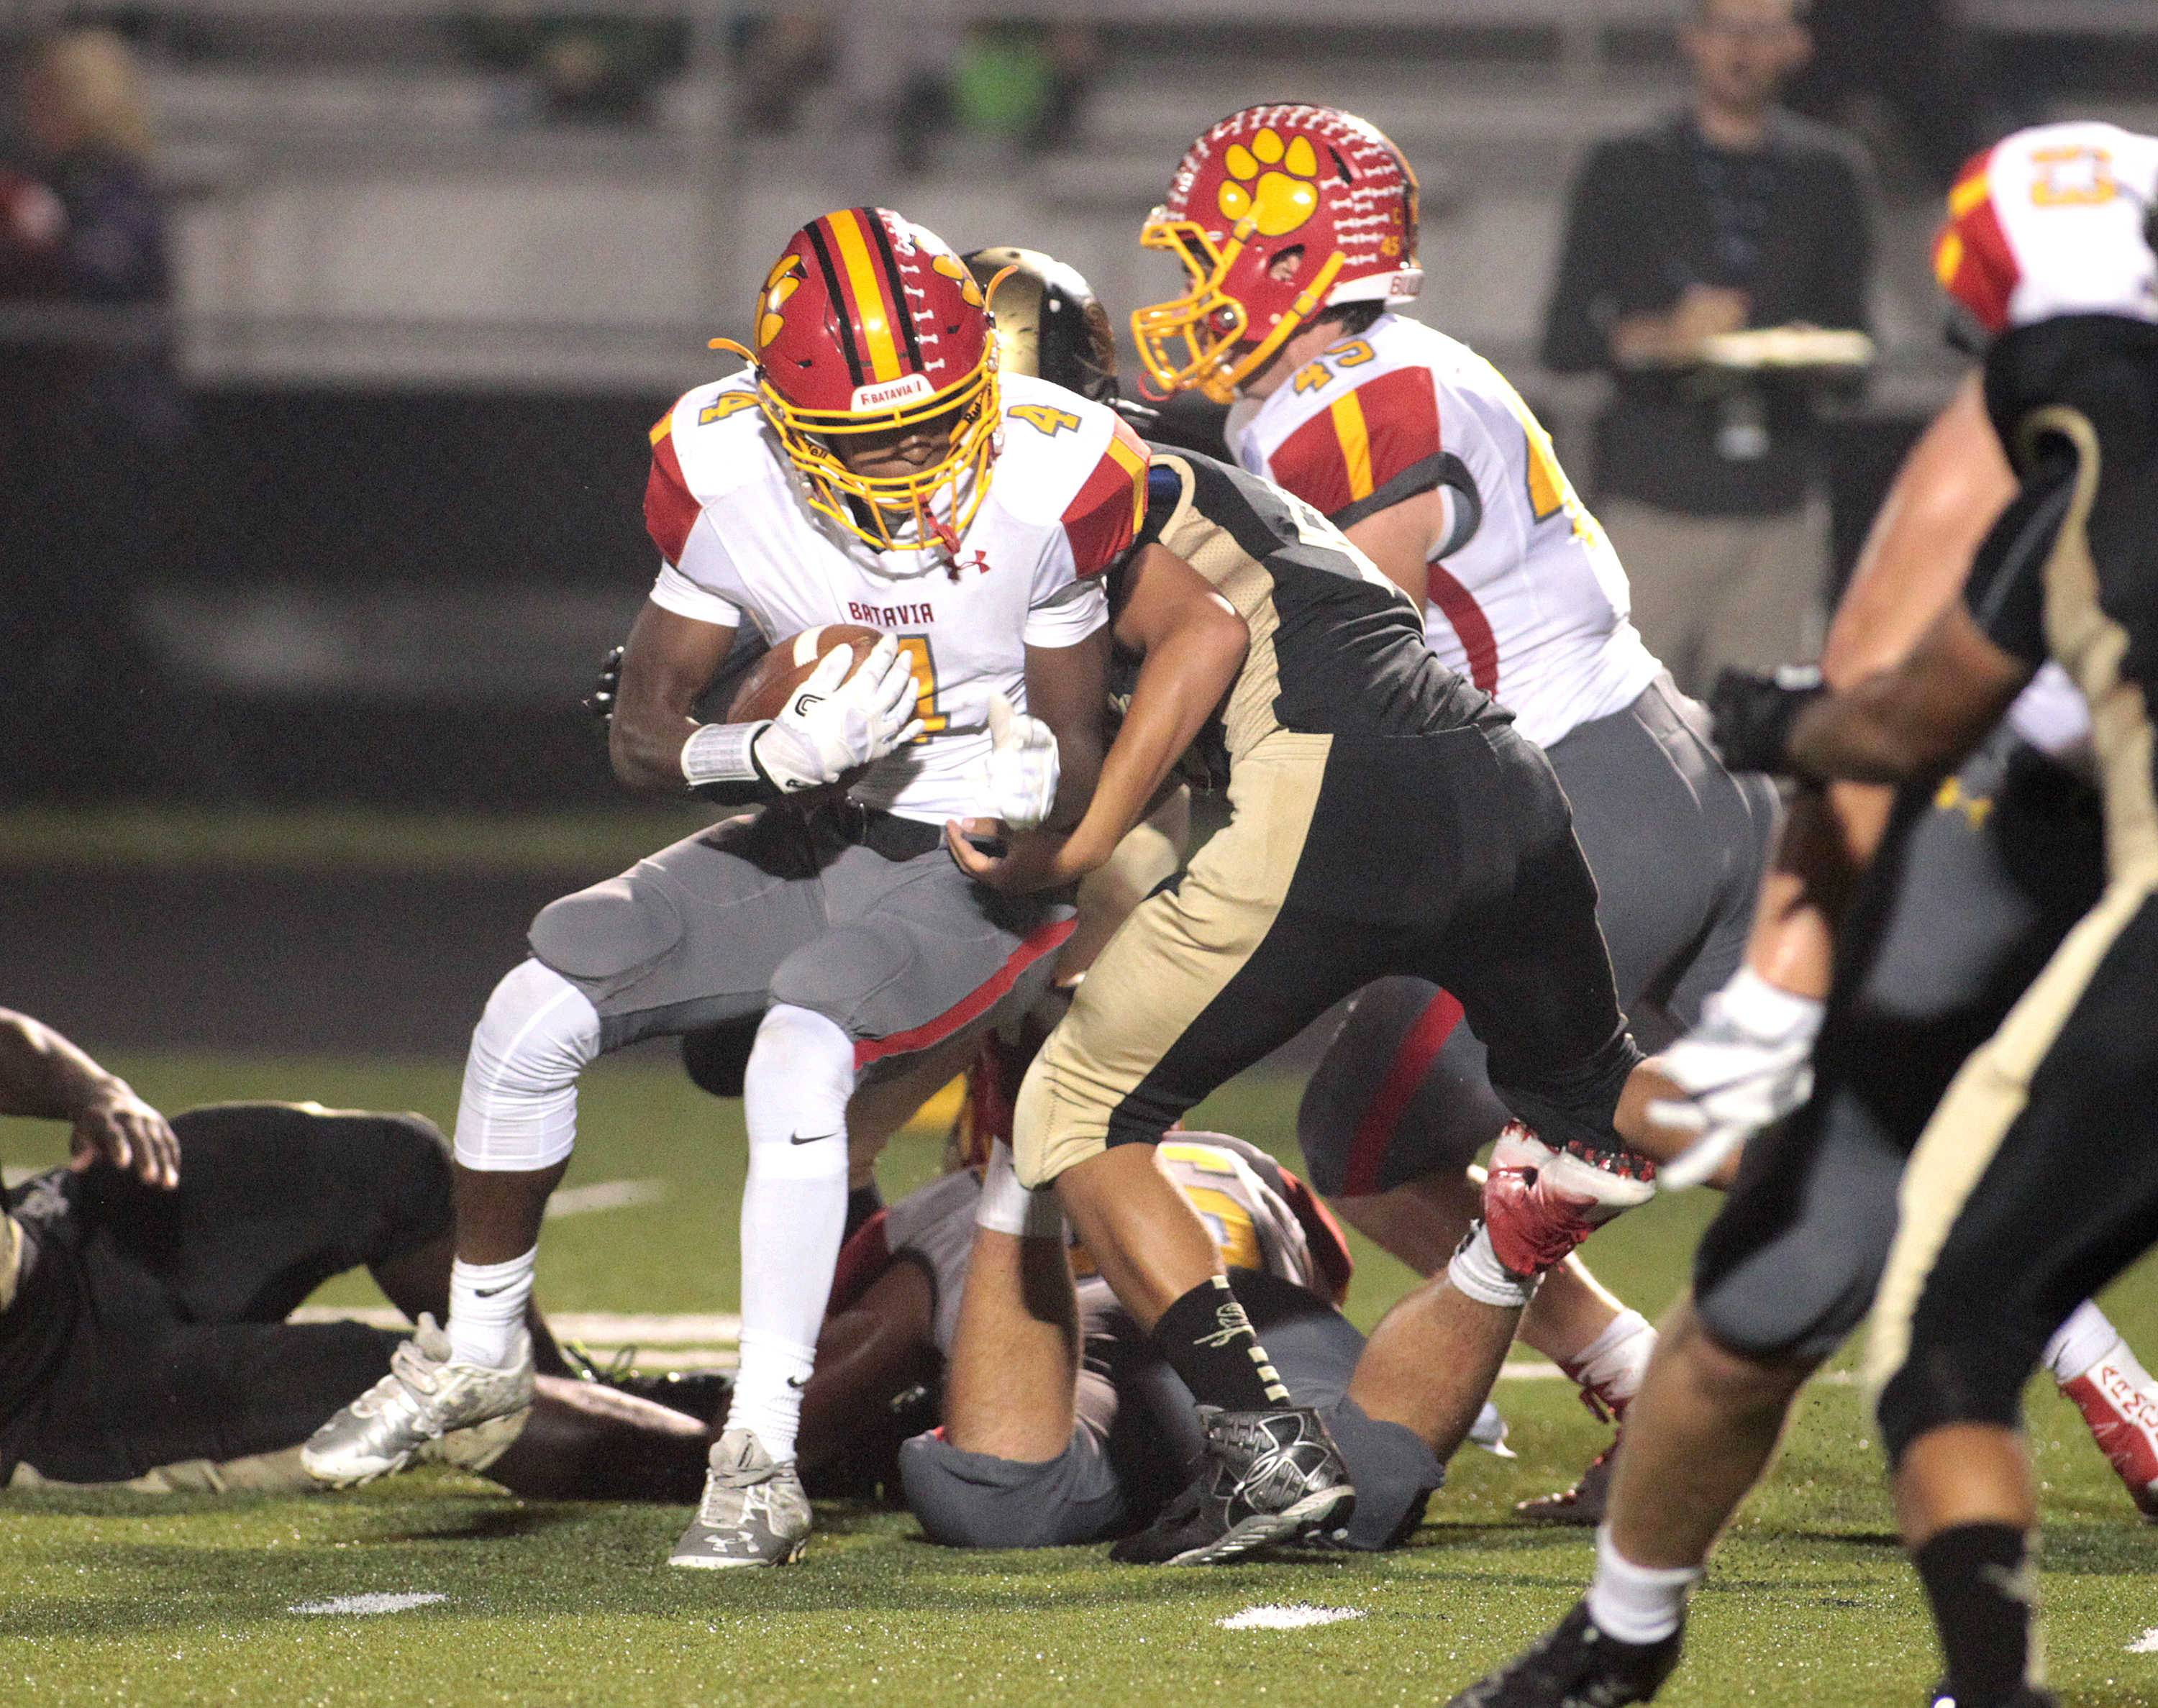 Batavia's Reggie Phillips (4) holds onto the ball while surrounded by Streamwood's defense during a game at Streamwood Sept. 9.